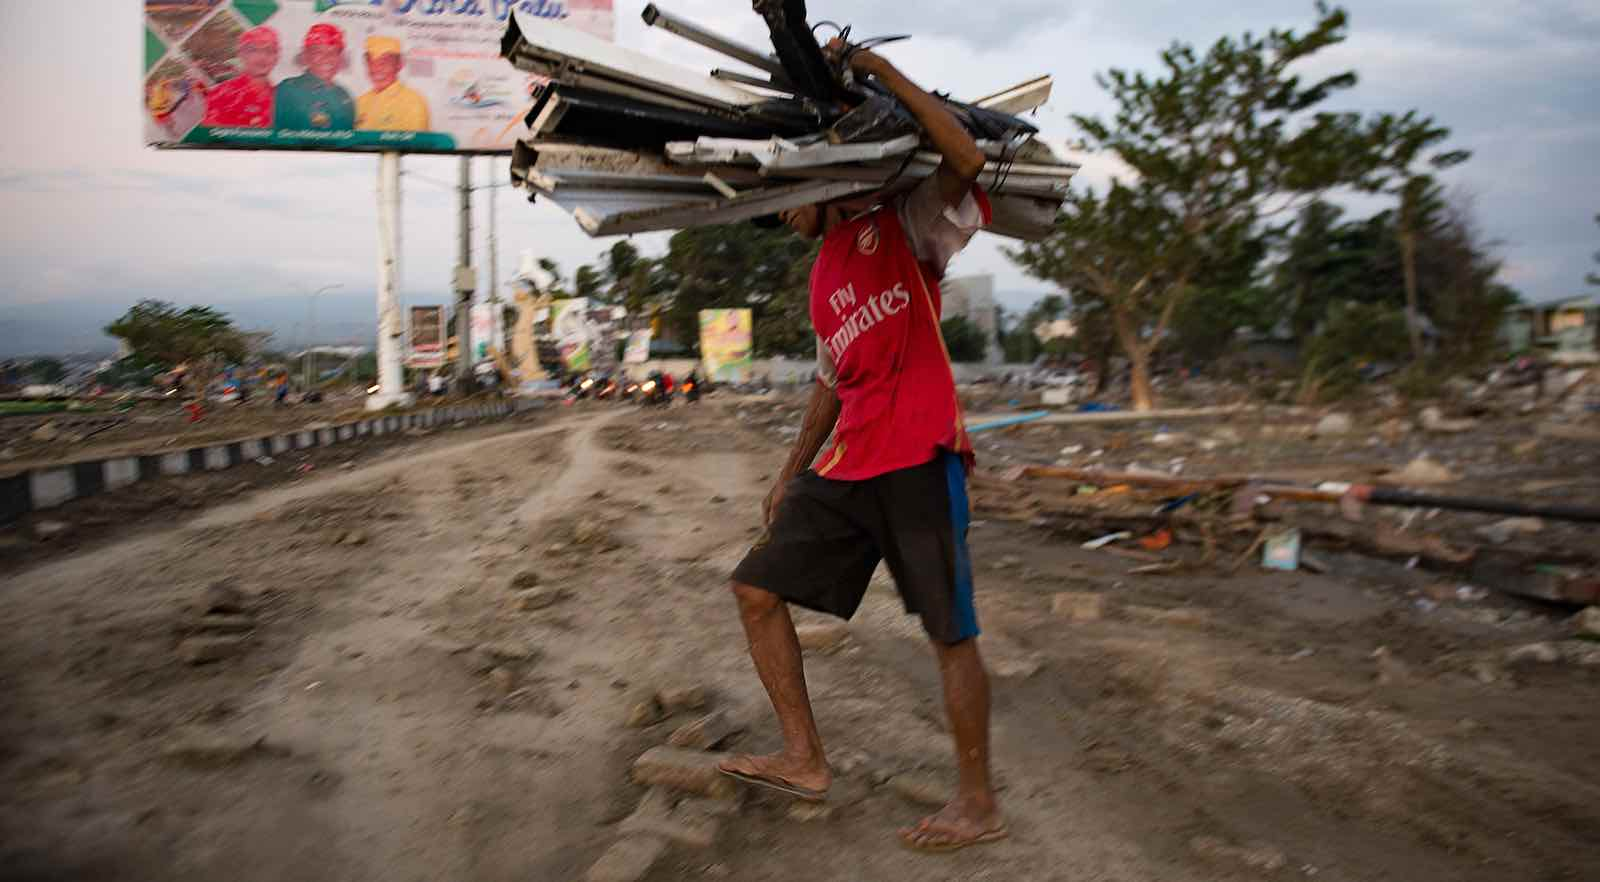 Collecting valuable material from a beach that was hit by a tsunami in Palu, Central Sulawesi on 29 September (Photo: Bay Ismoyo via Getty)